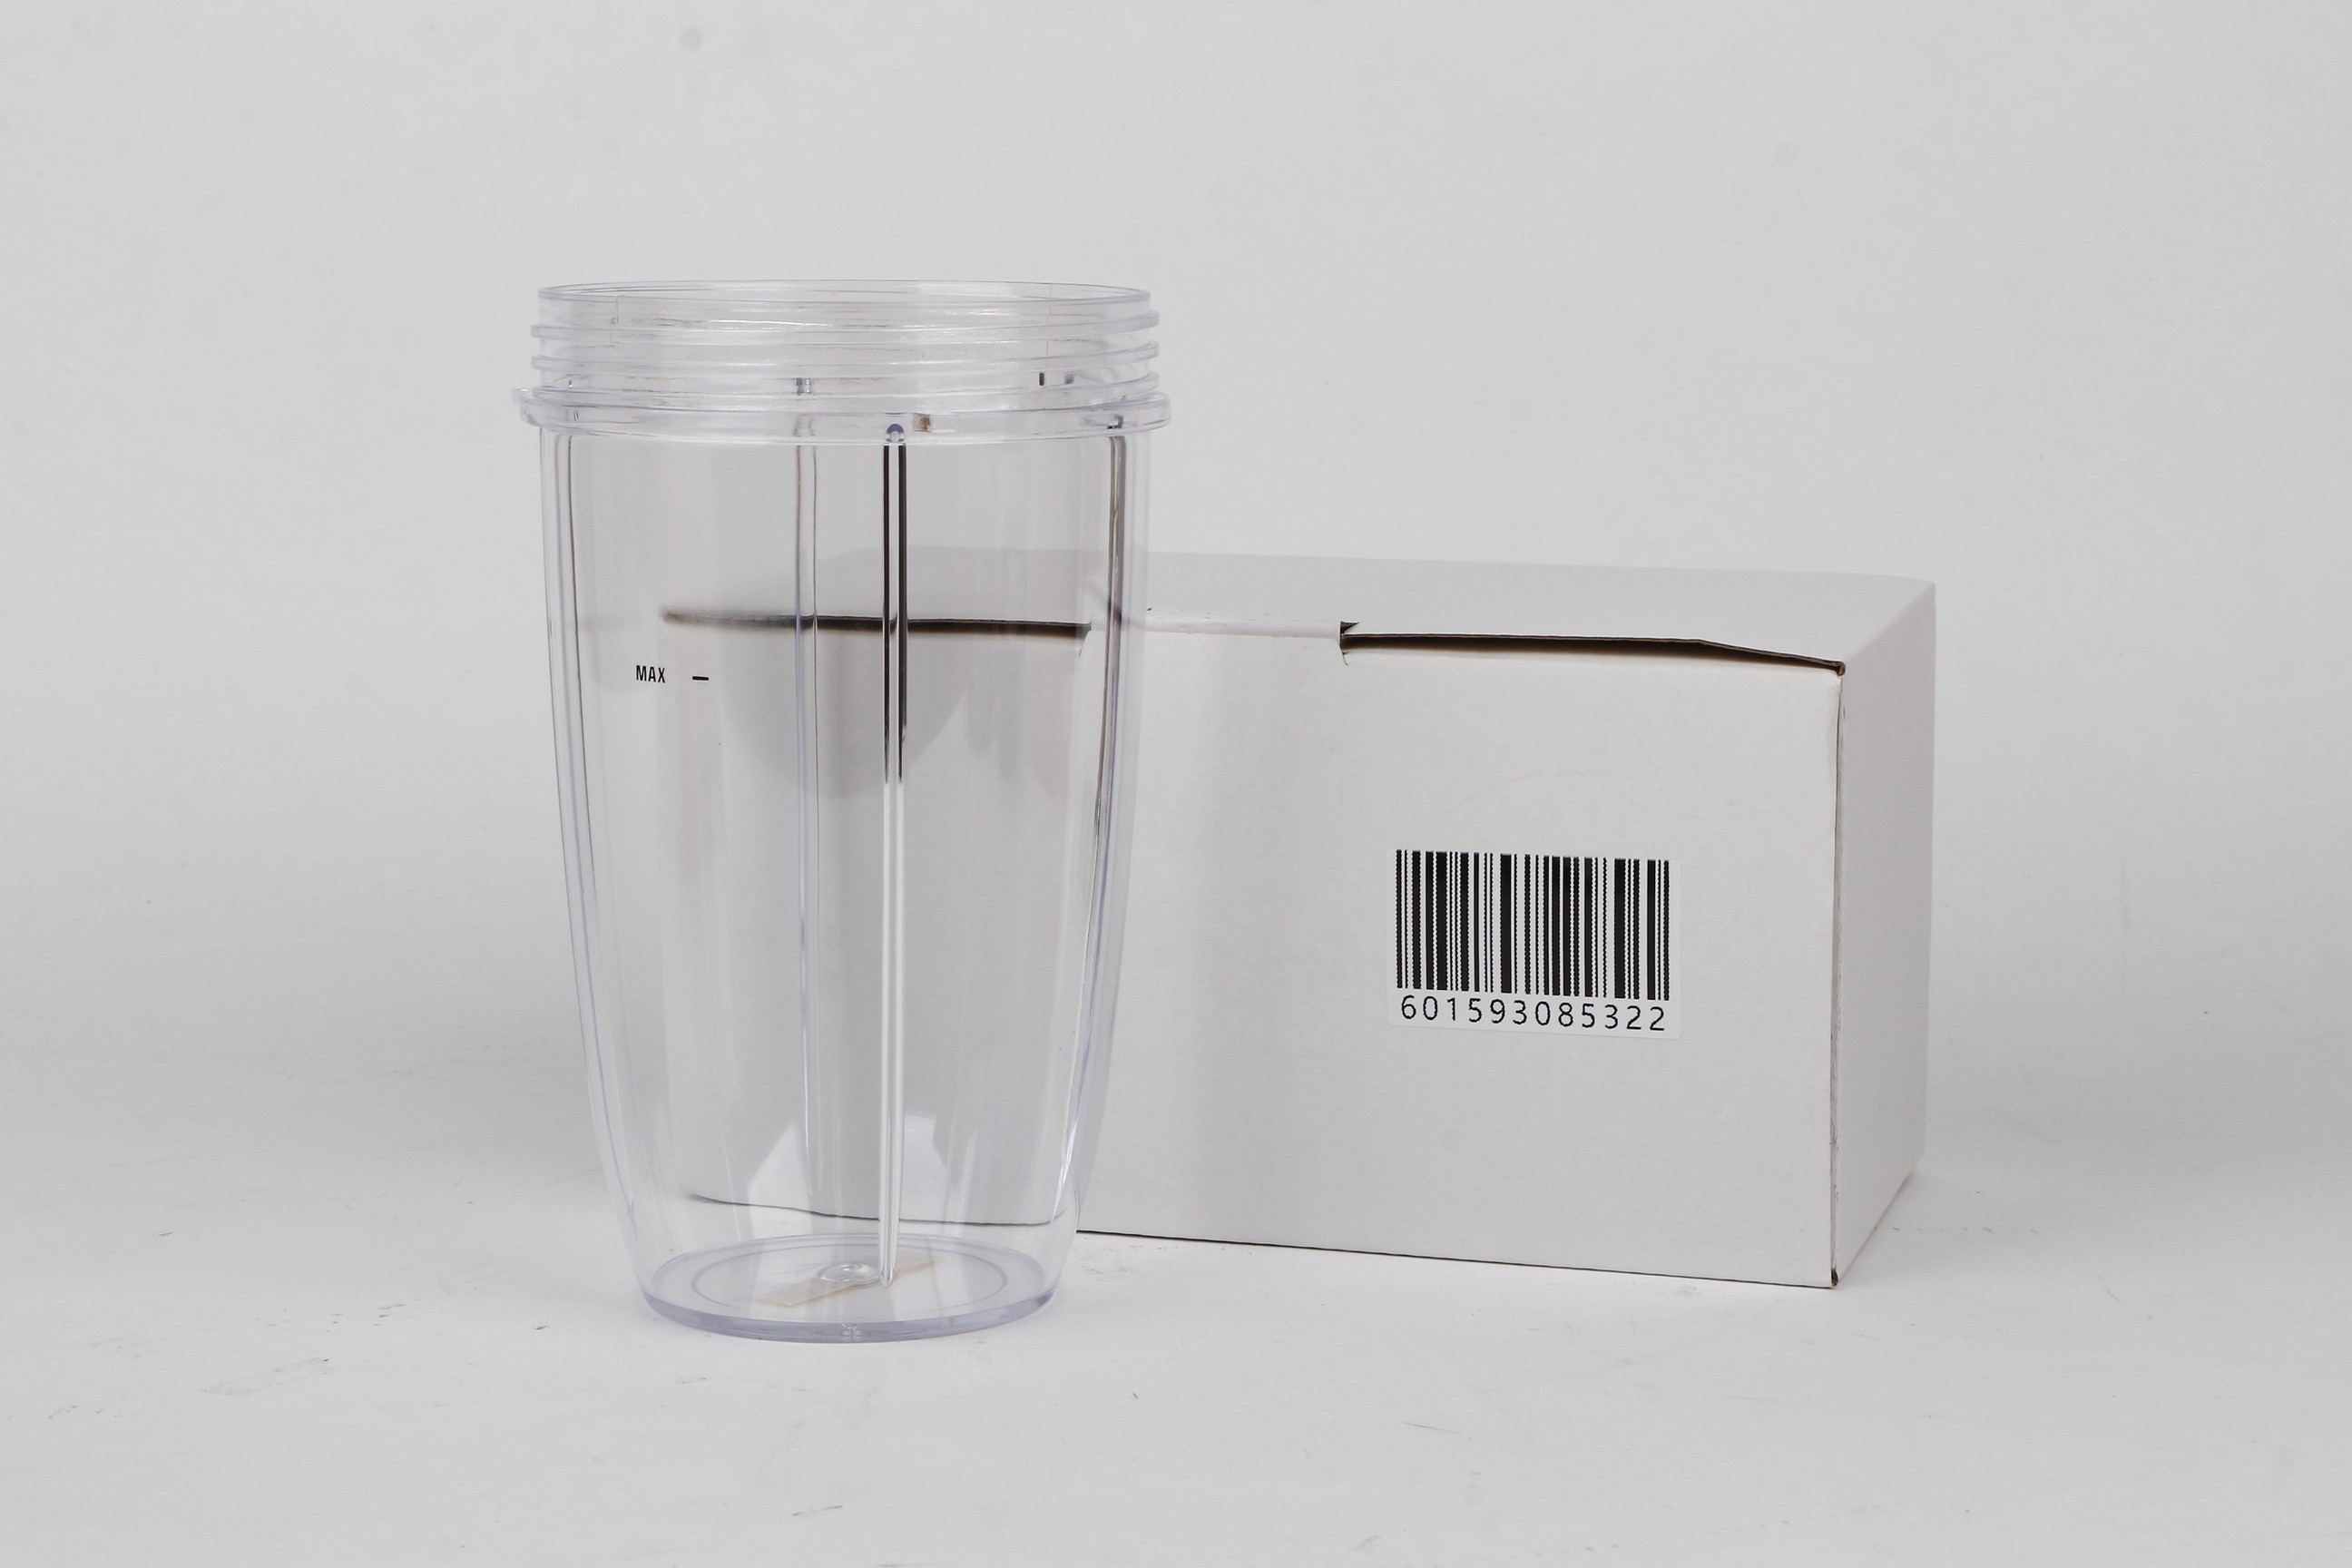 Replacement,Compatible Nutri Ninja Auto IQ 600W 900W Blenders,Blade,Cup,Jar